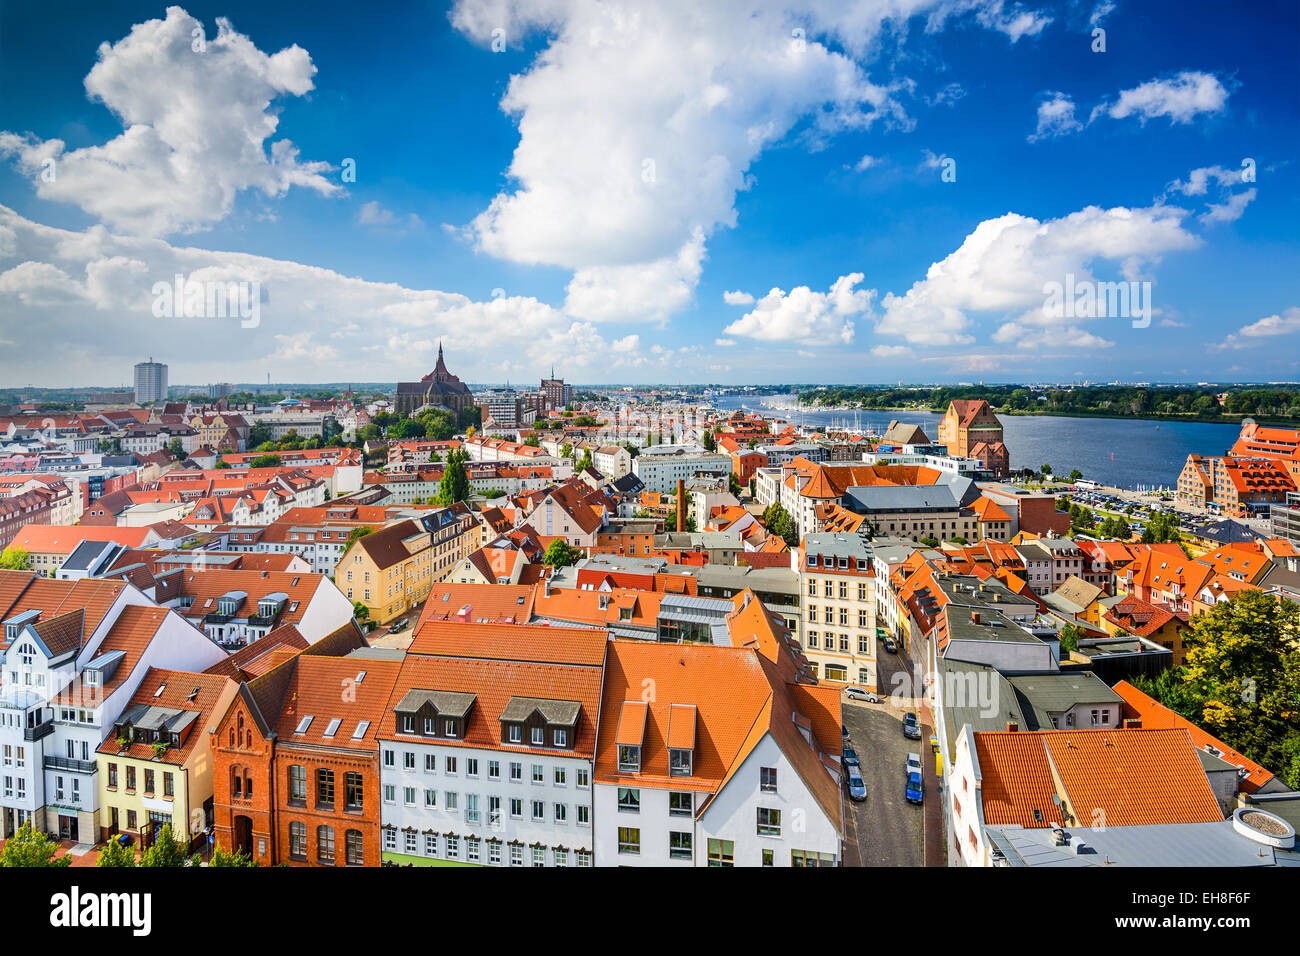 Rostock, Allemagne vieille ville. Photo Stock